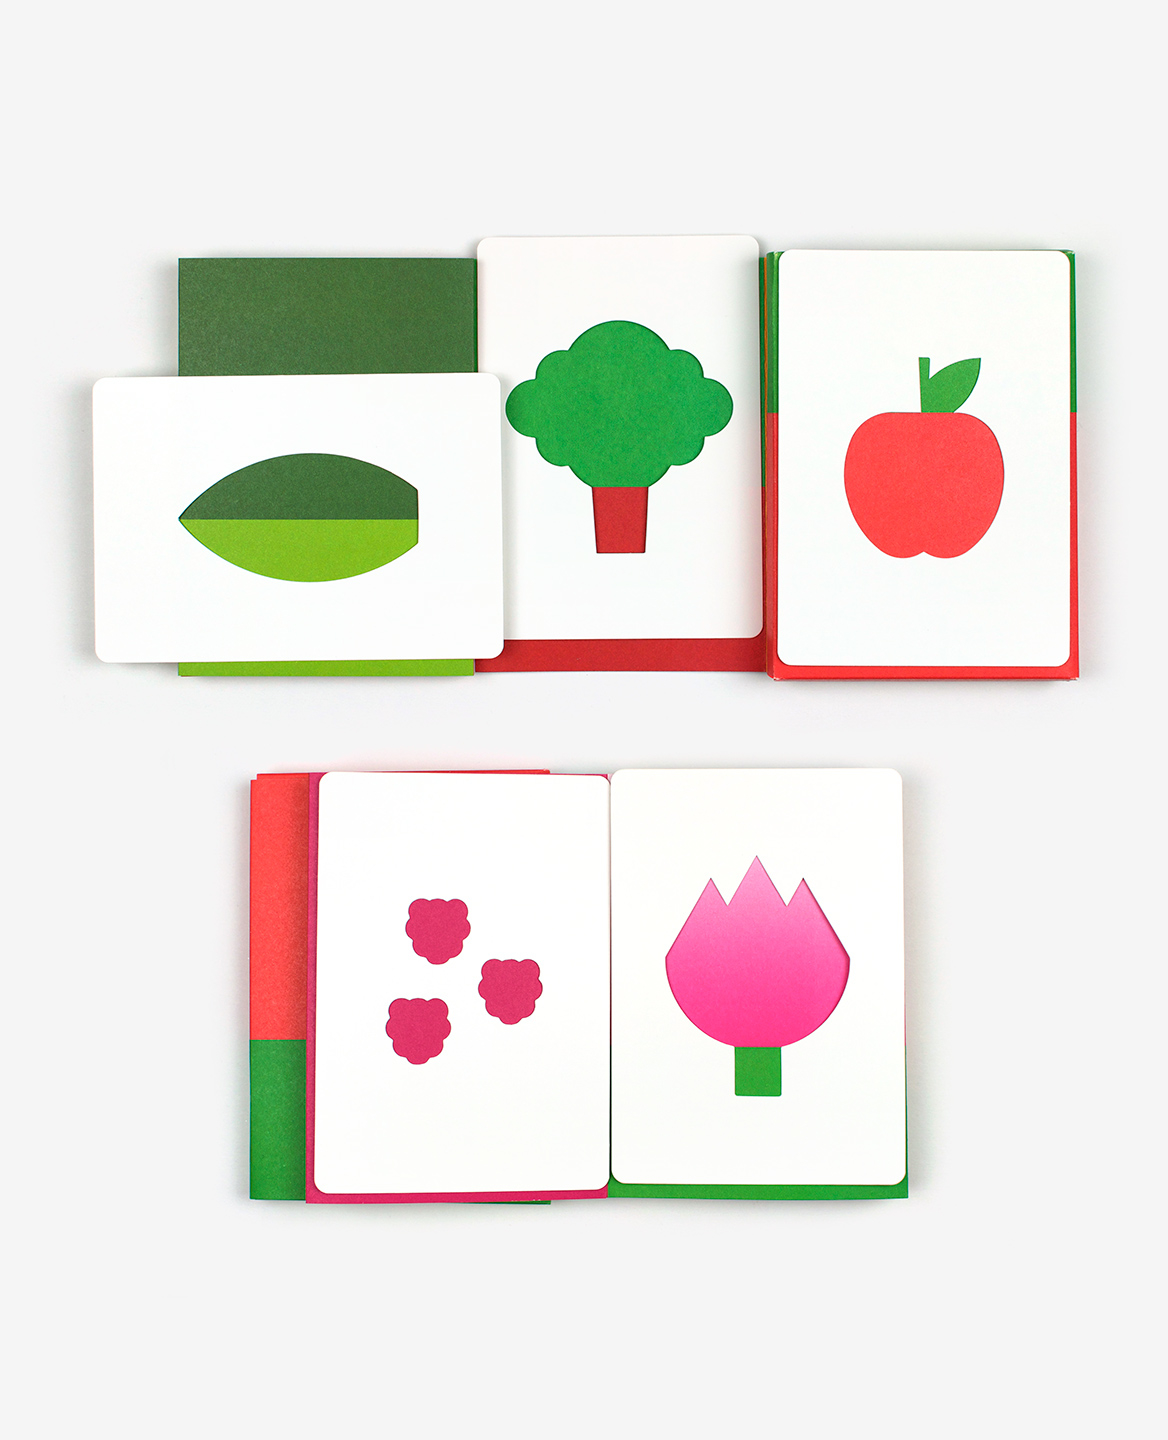 Leaf, tree, apple, raspberry and tulip from the book-game Hello tomato